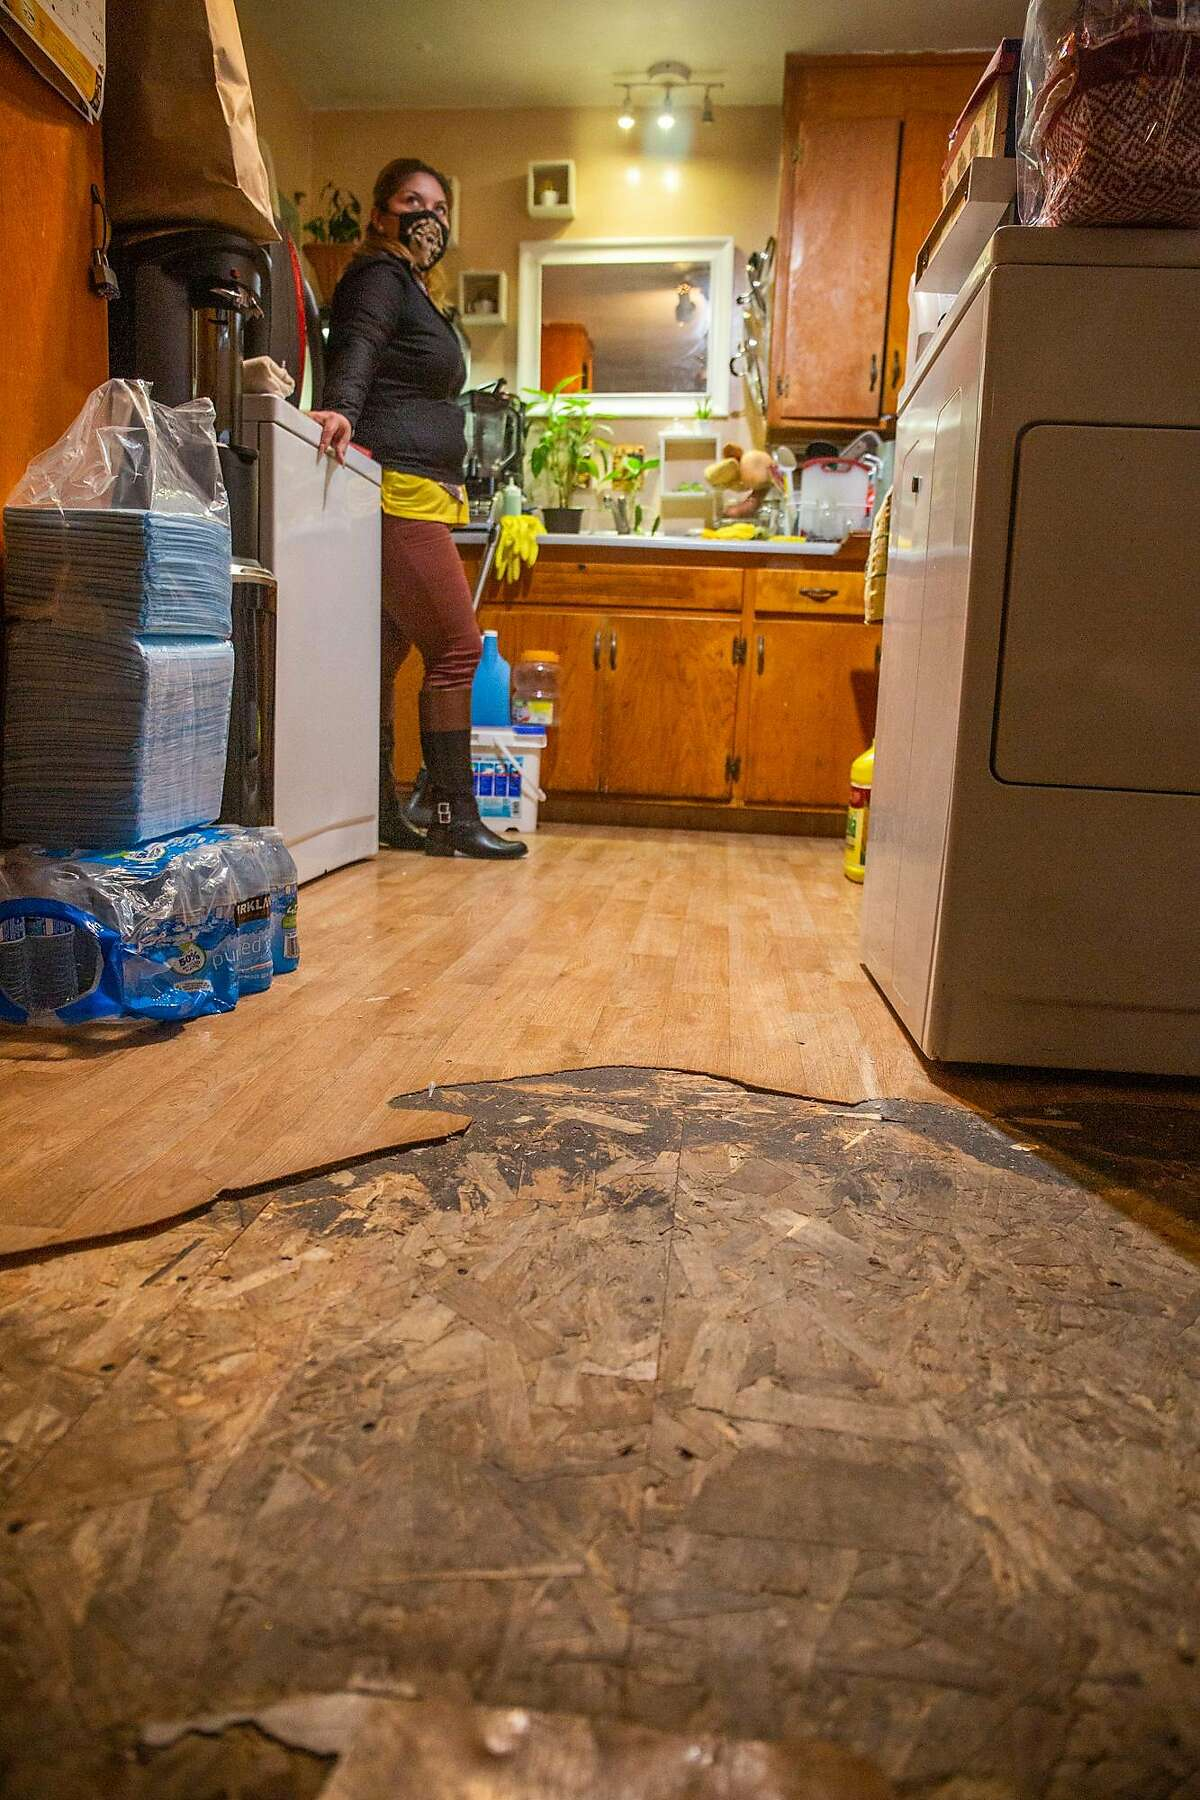 Angelica Rivas has been in her Oakland Apartment for over 16 years, her parents live next door and she lives with her three children. She has complained to the many landlords who have cycled through property ownership of the floor, the lack of light, the lack of water pressure, the cockroaches, and the rats.